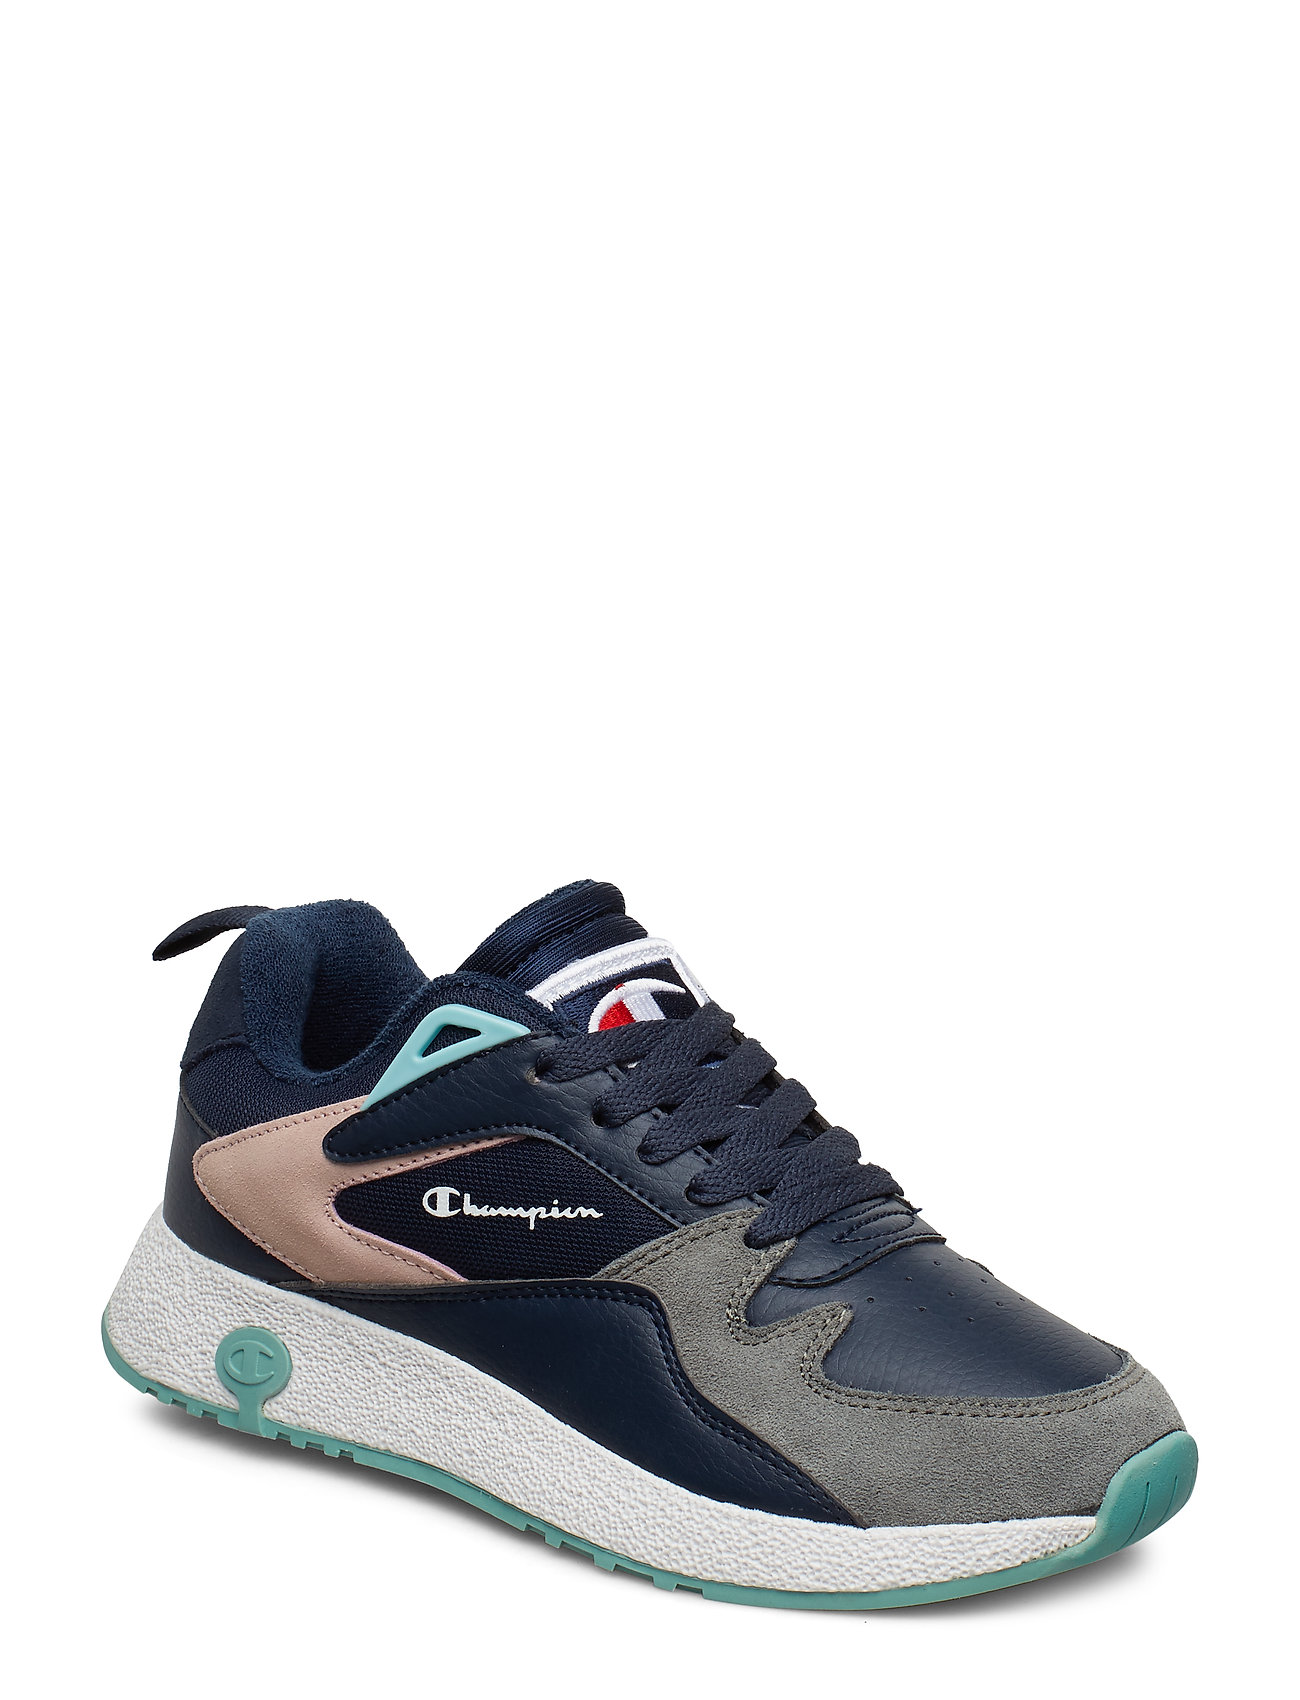 Image of Low Cut Shoe Austin Low-top Sneakers Blå Champion (3214088141)